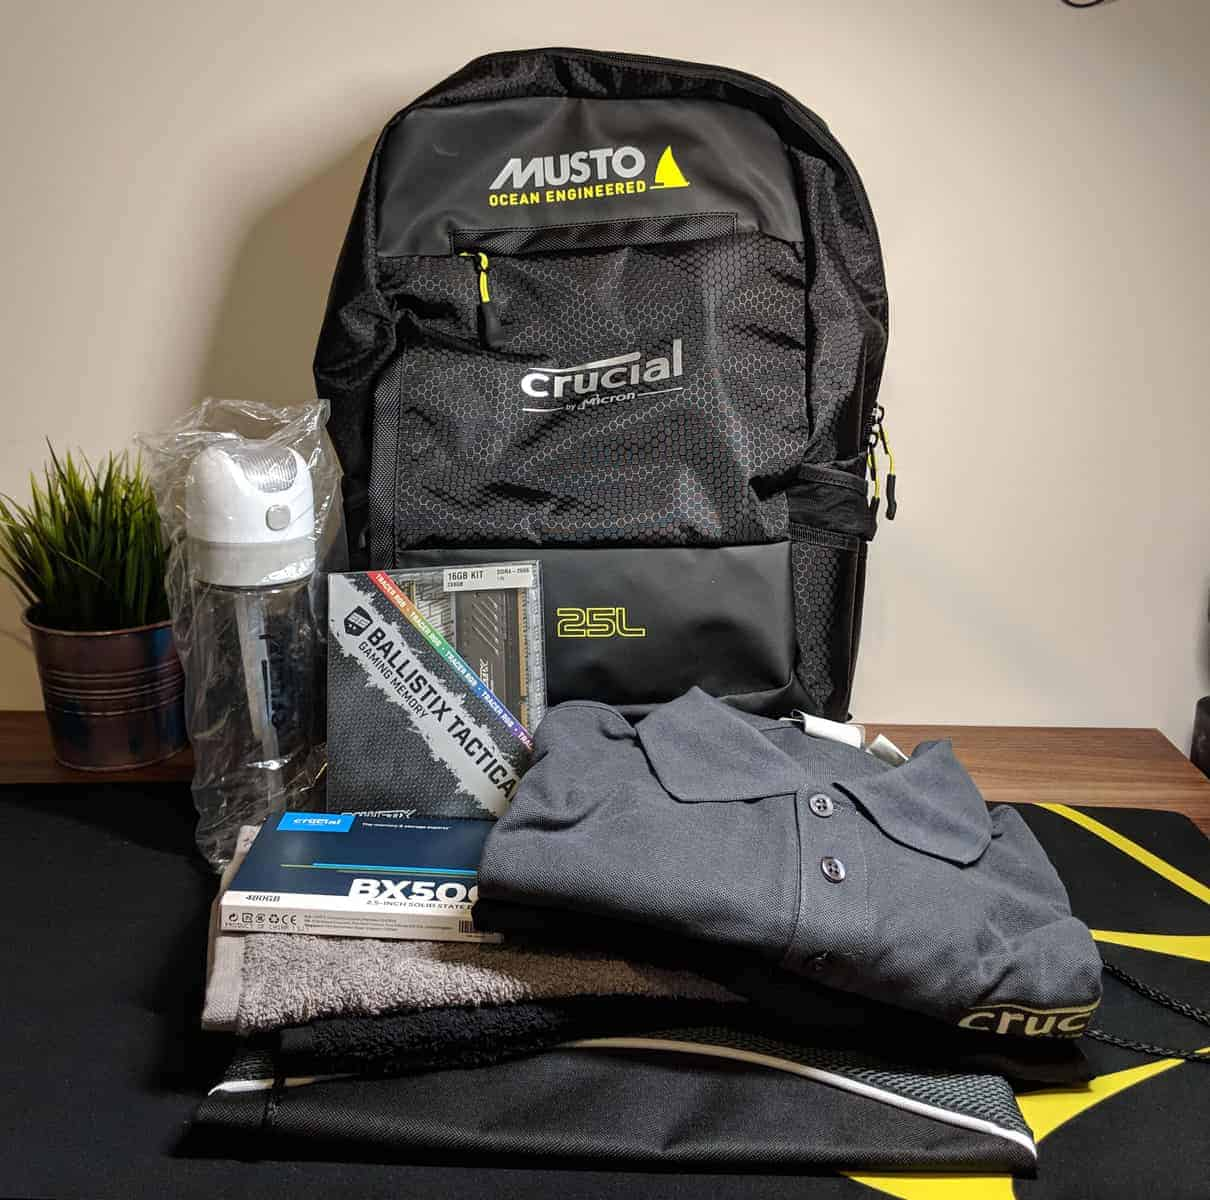 crucial-pack Crucial 22nd Anniversary Giveaway!